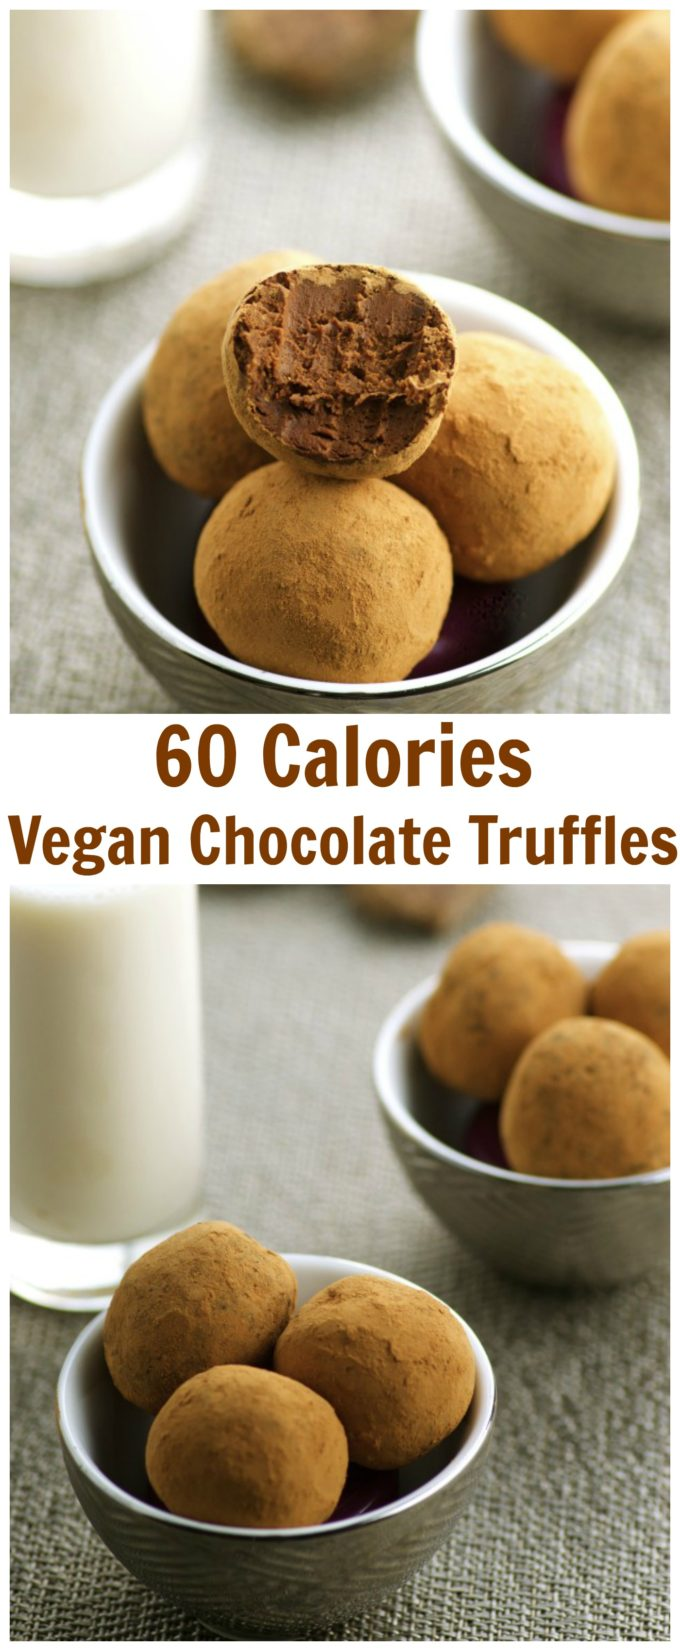 Only 60 calories per vegan chocolate truffle.  Guilt free